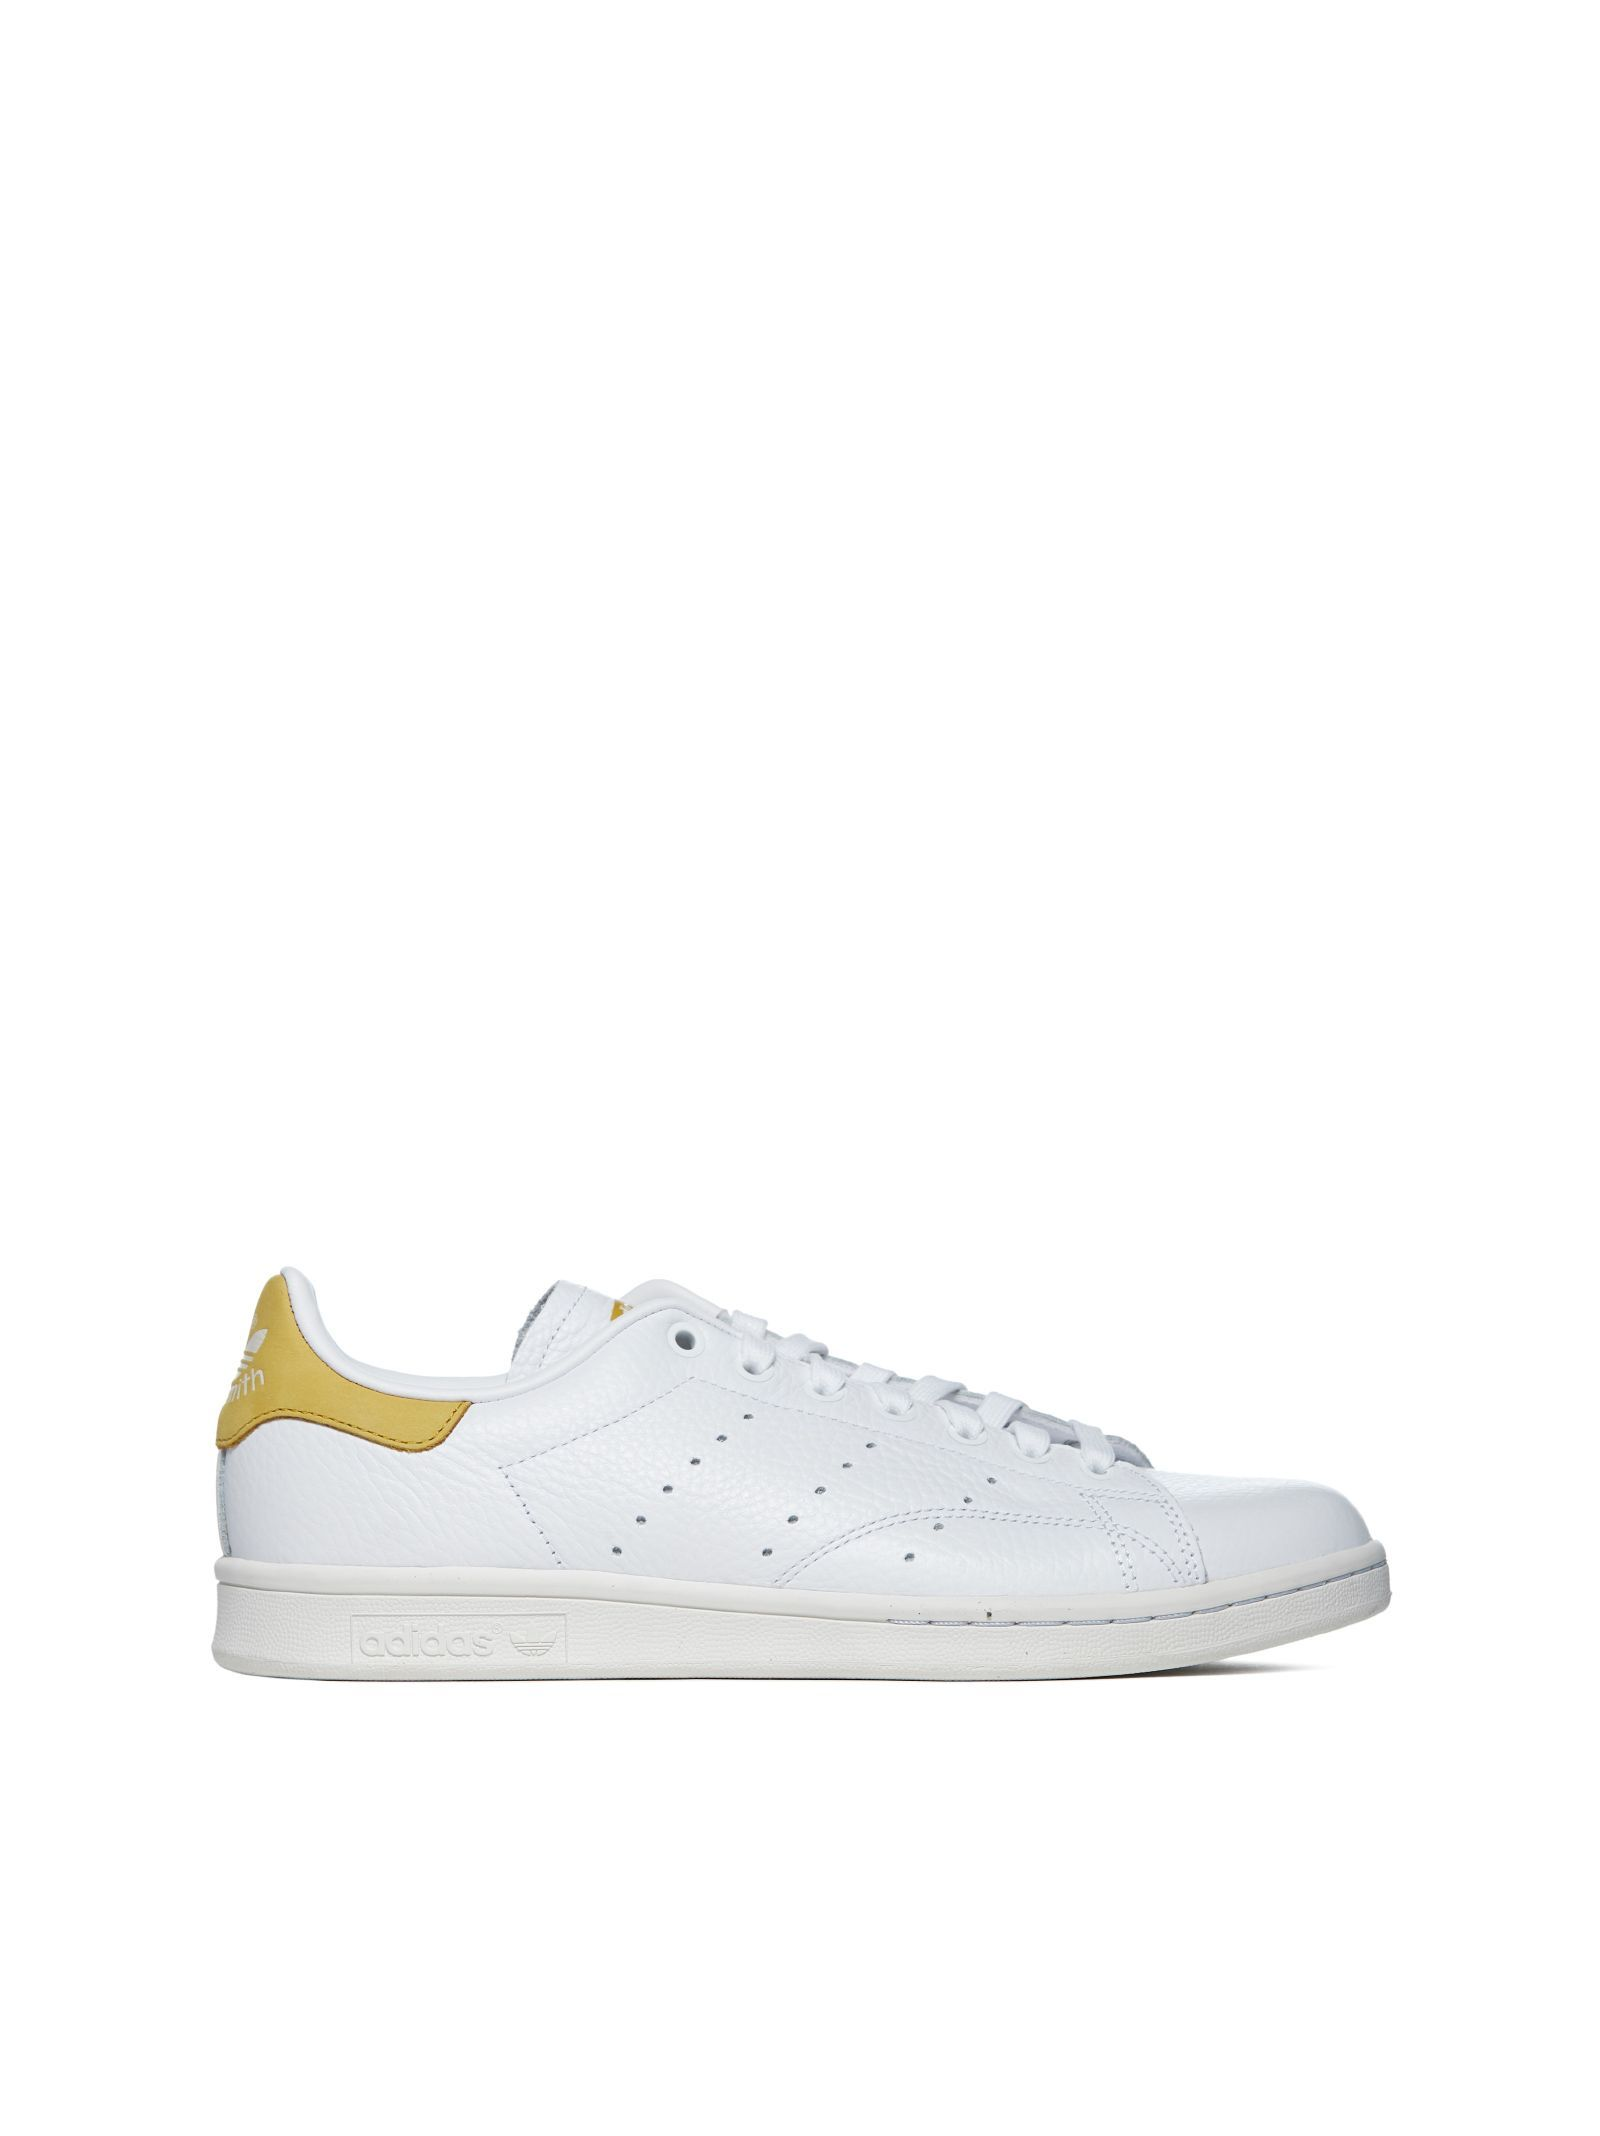 half off fff19 a0b9c ADIDAS ORIGINALS STAN SMITH SNEAKERS.  adidasoriginals  shoes